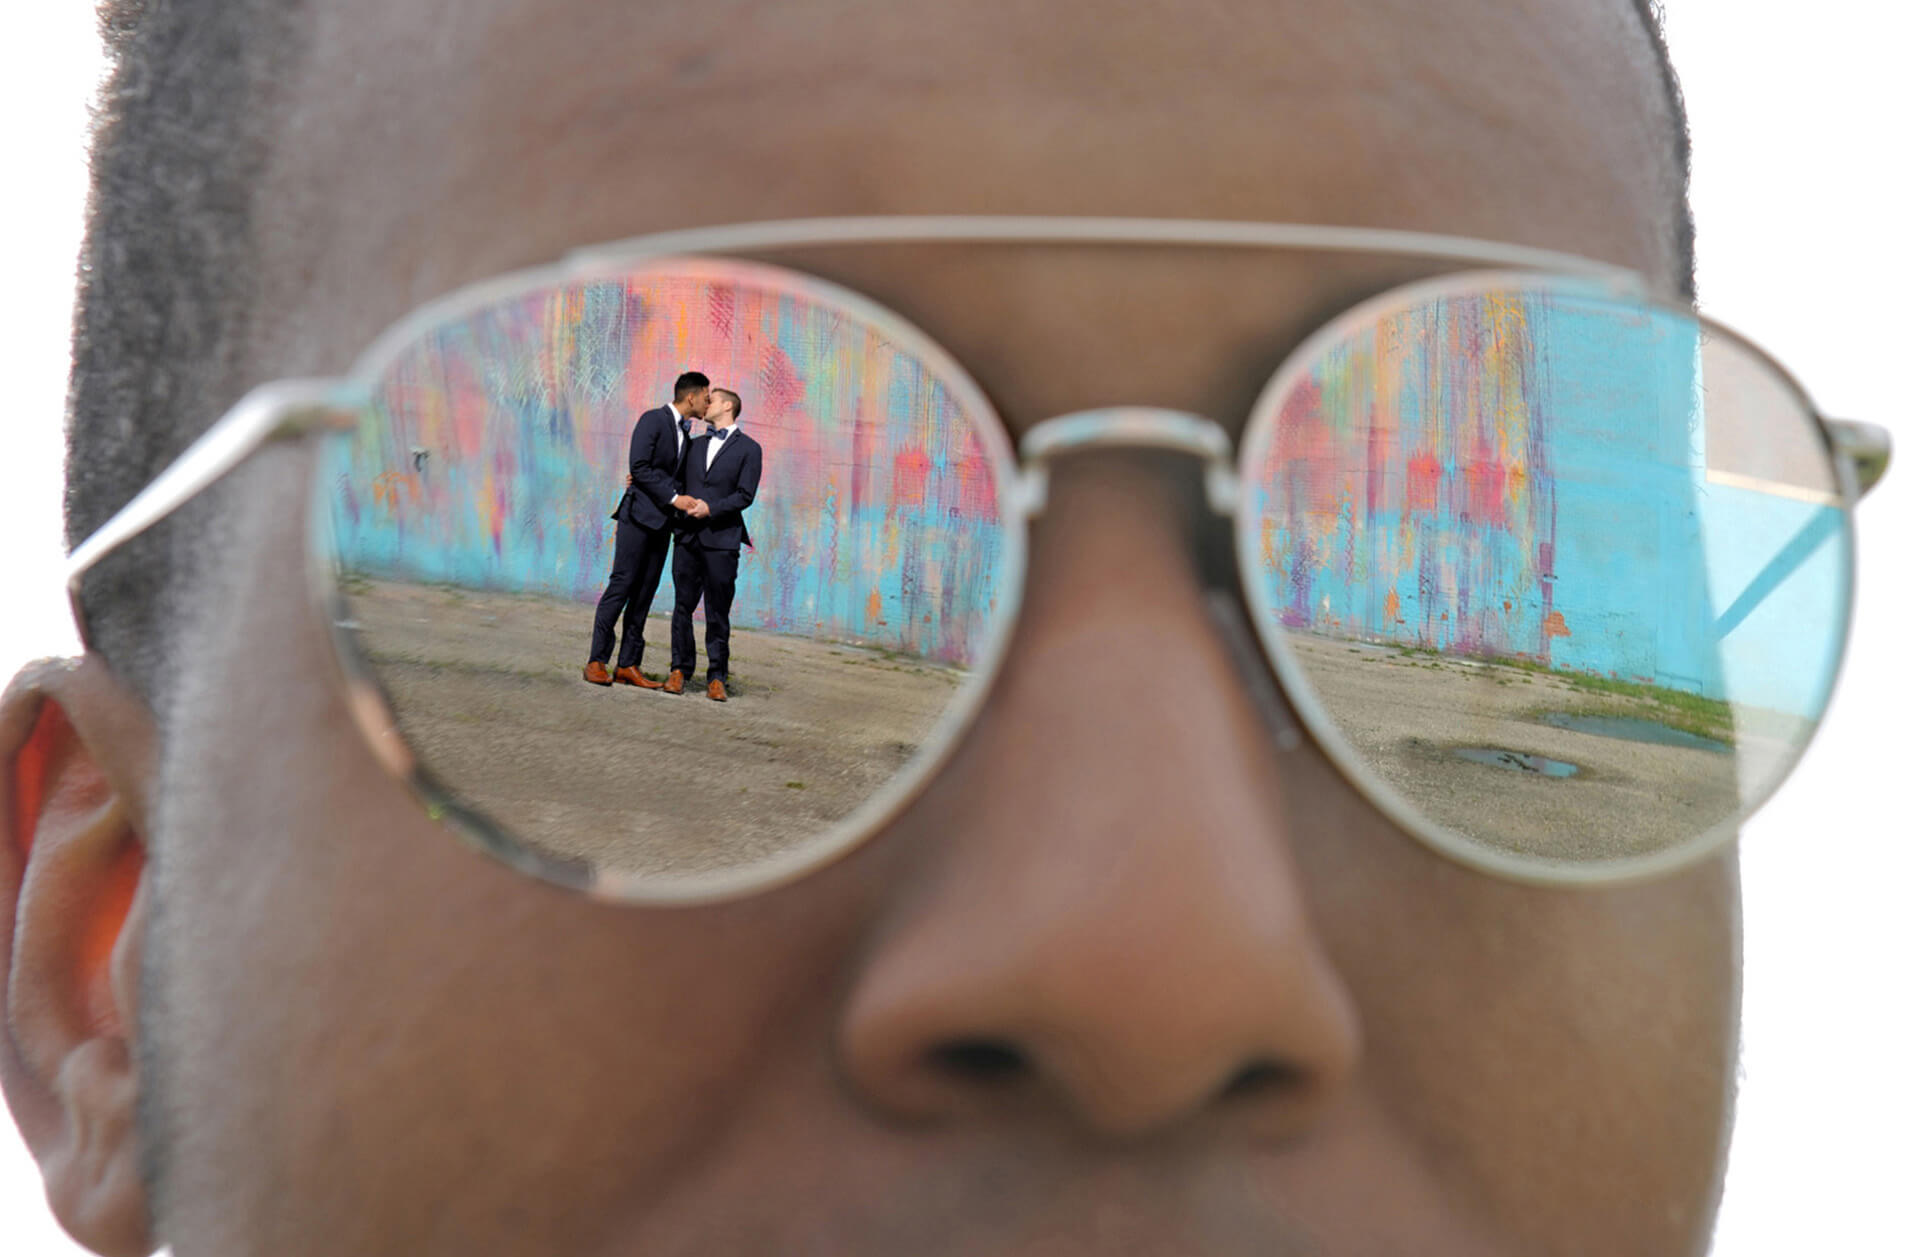 One of the groomsmen reflects two grooms in his sunglasses.